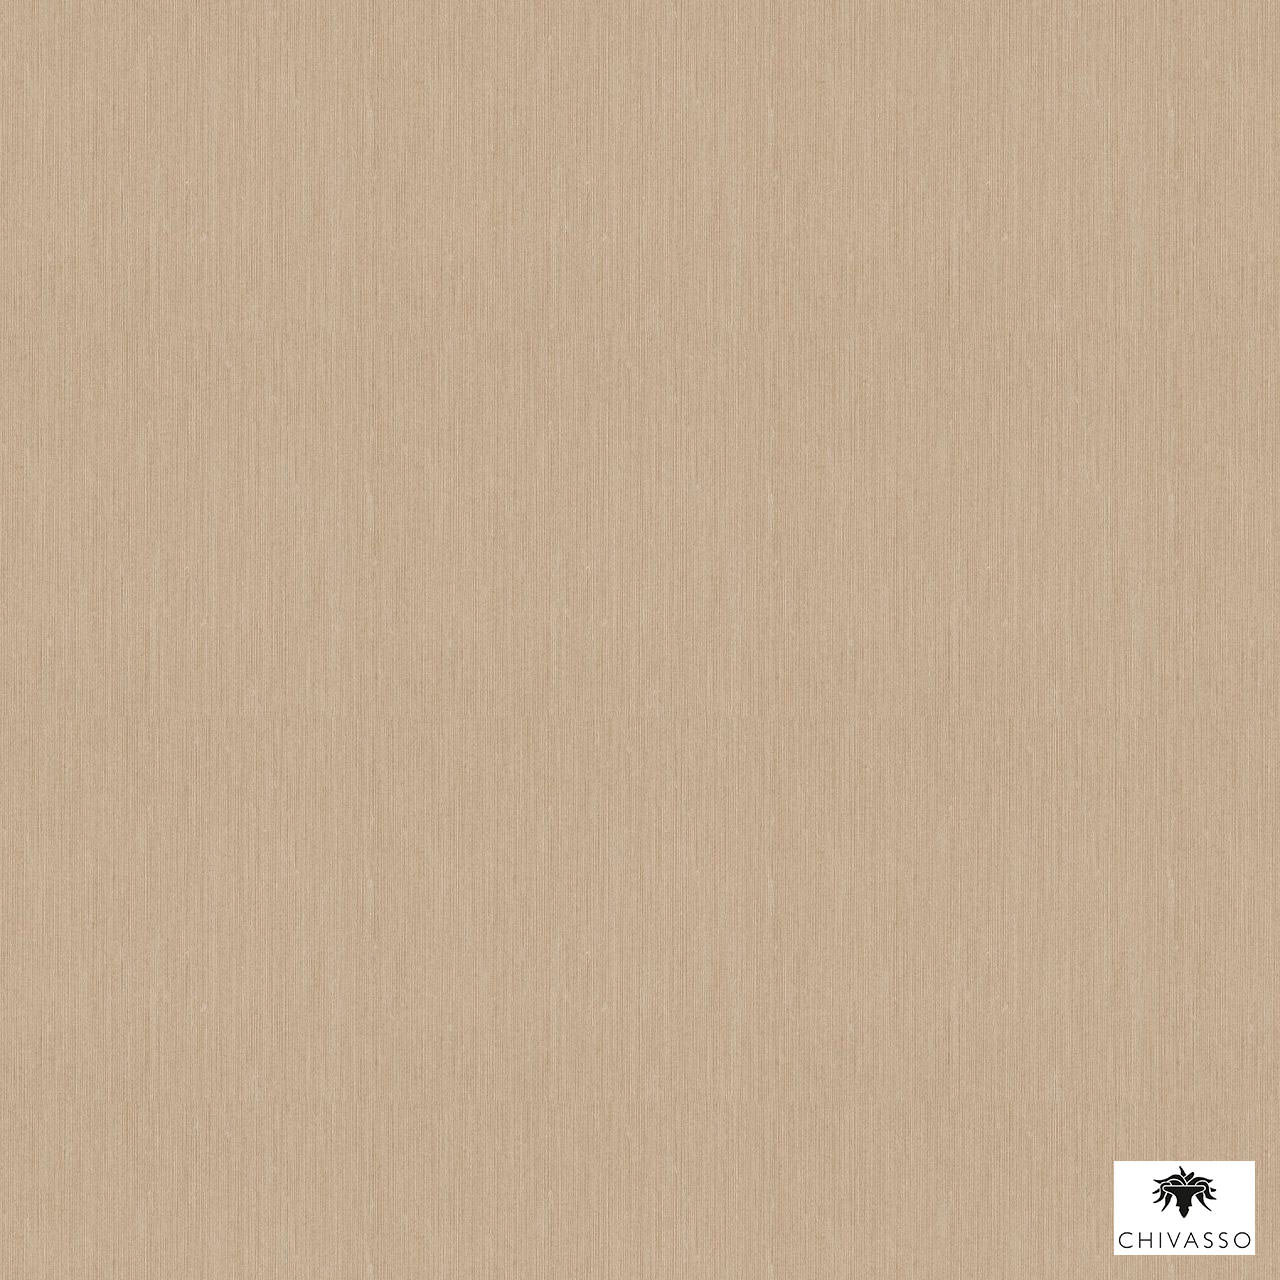 Chivasso - Colour Block - Ch9112-075  | Wallpaper, Wallcovering - Brown, Plain, Domestic Use